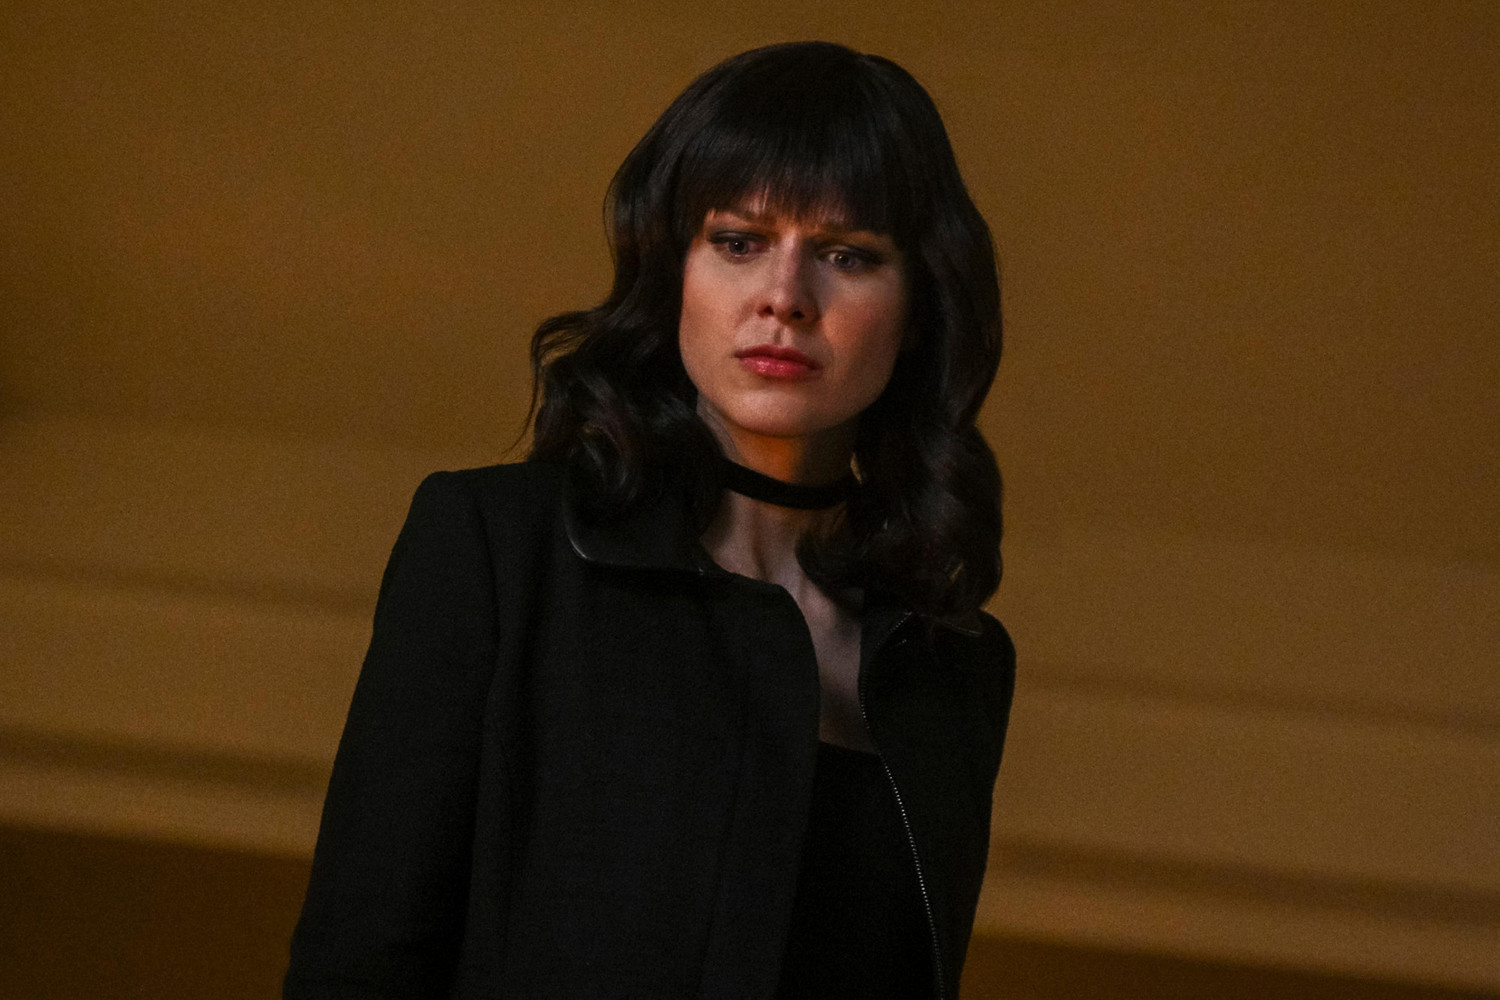 BWW Recap: SUPERGIRL Meets Her Evil Twin in 'You Are My Sunshine'